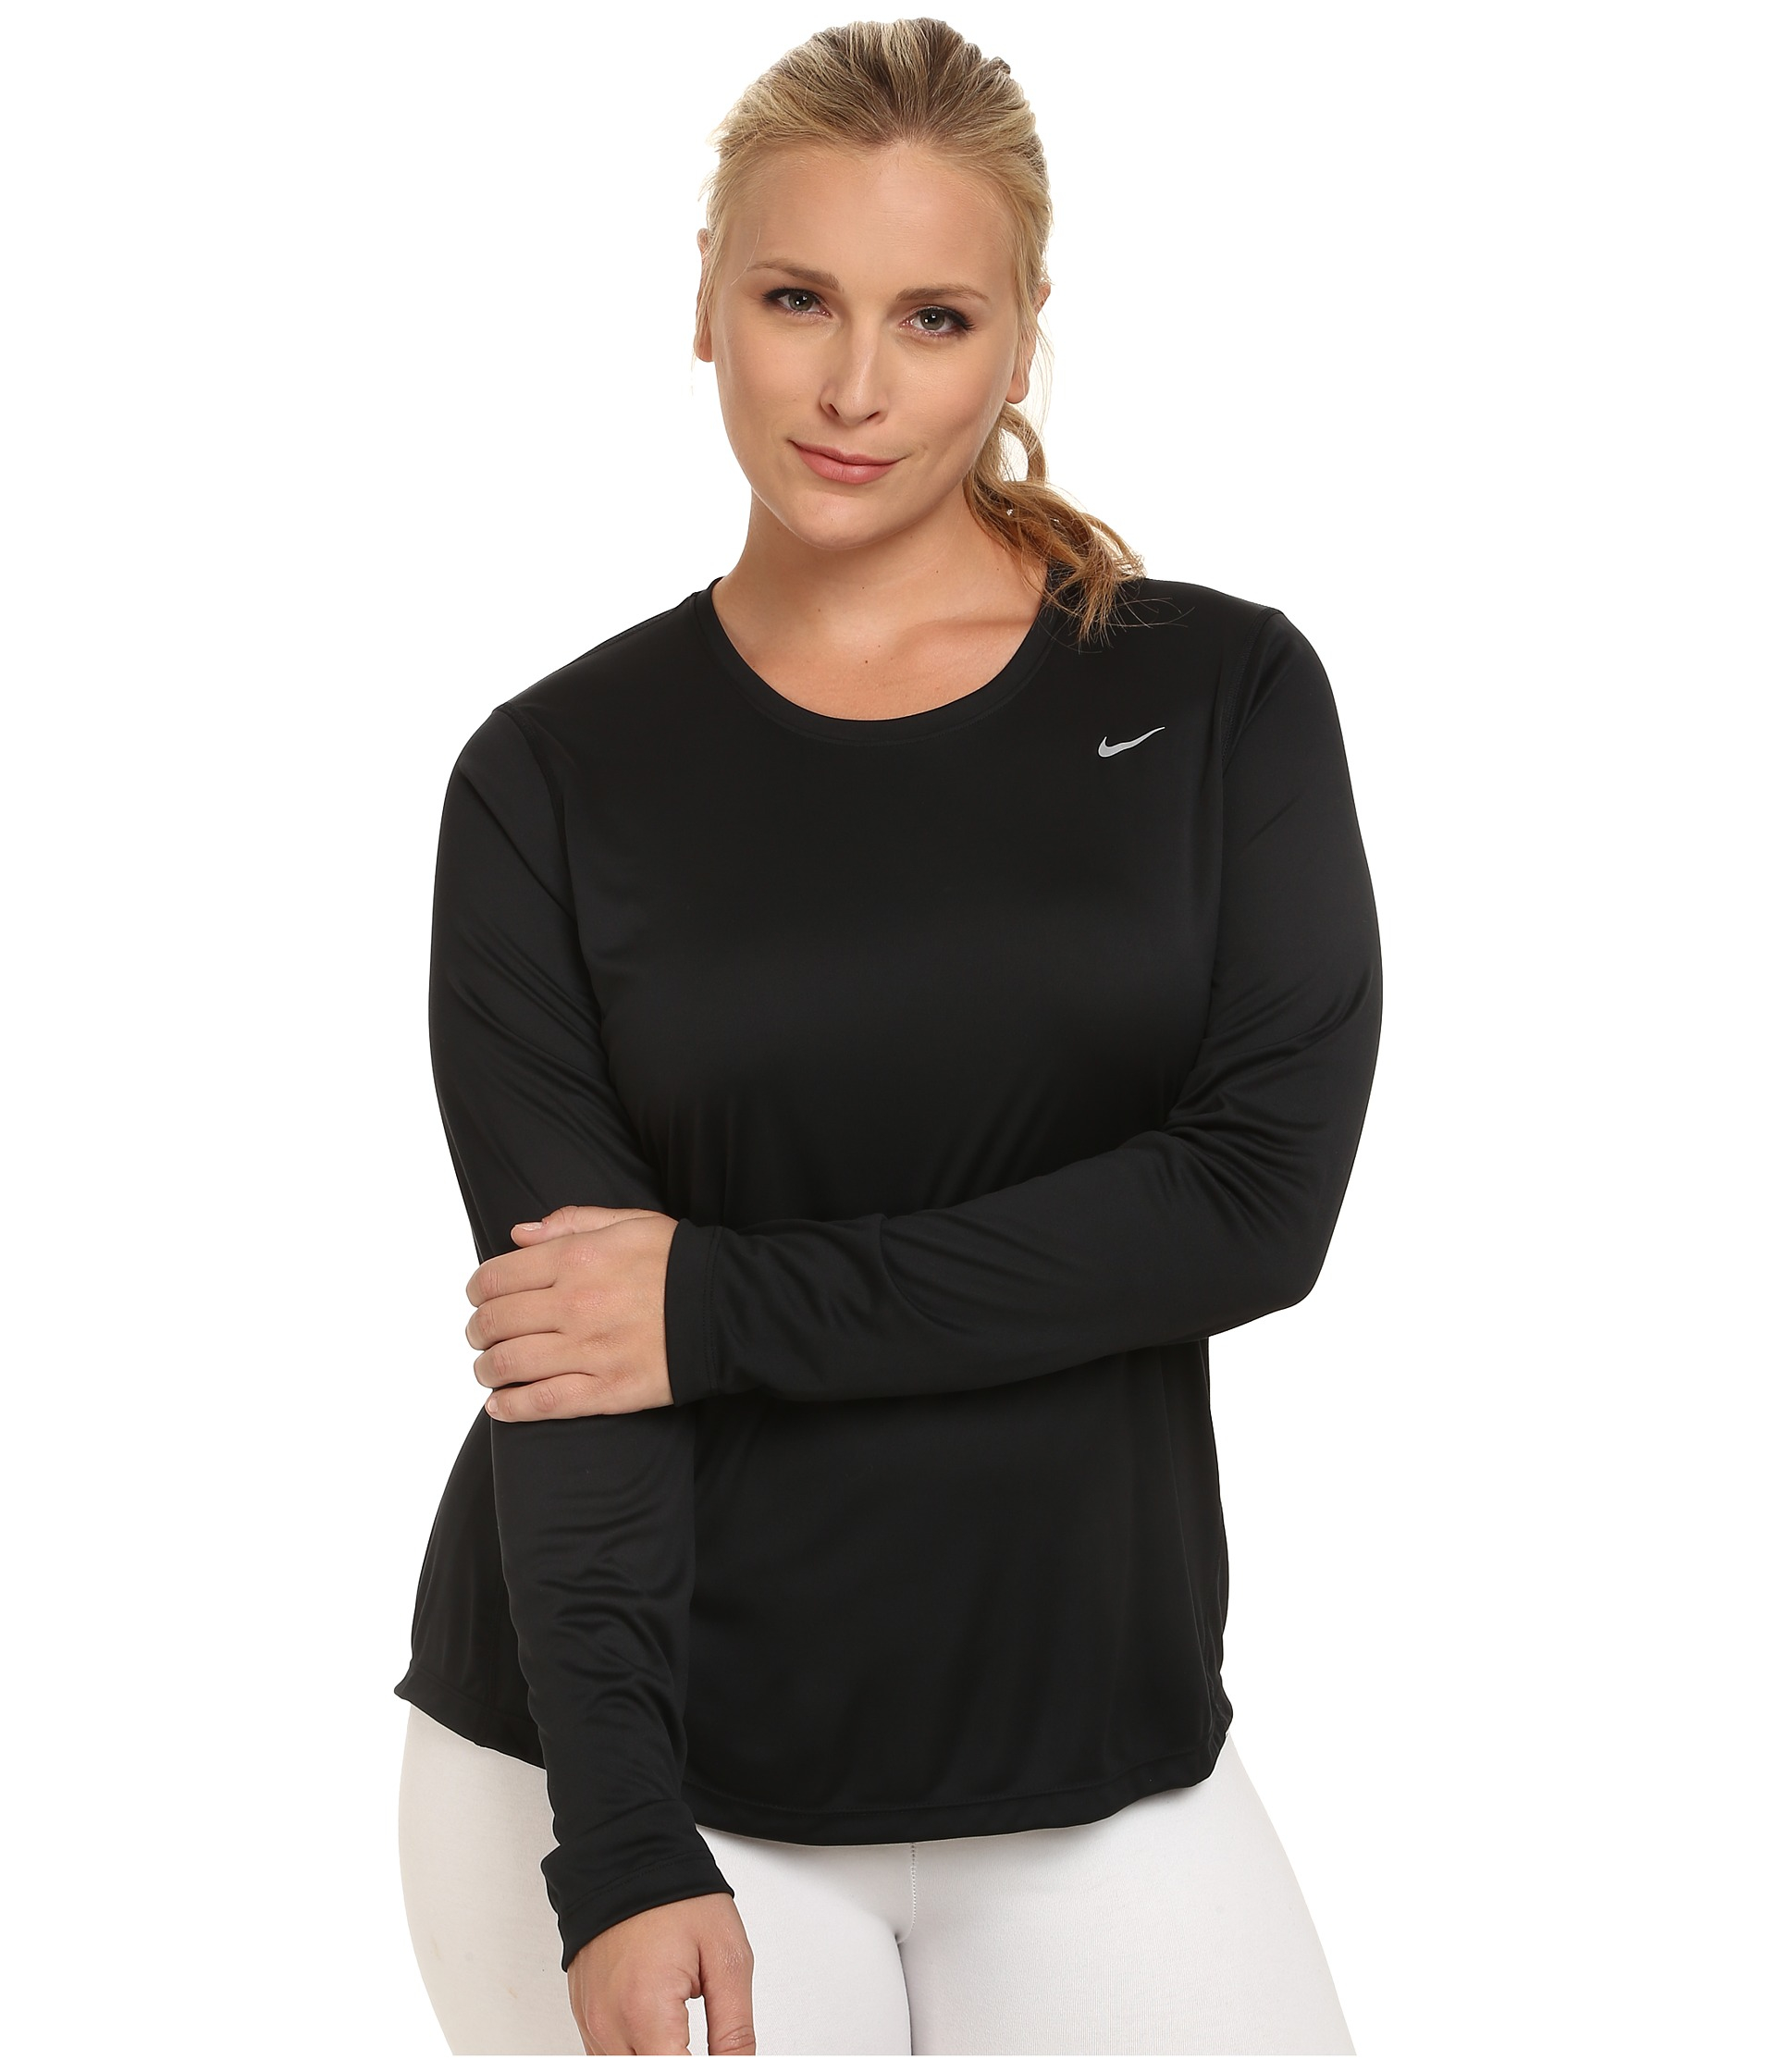 Nike Womens Plus Size Miler Long Sleeve Running Shirt